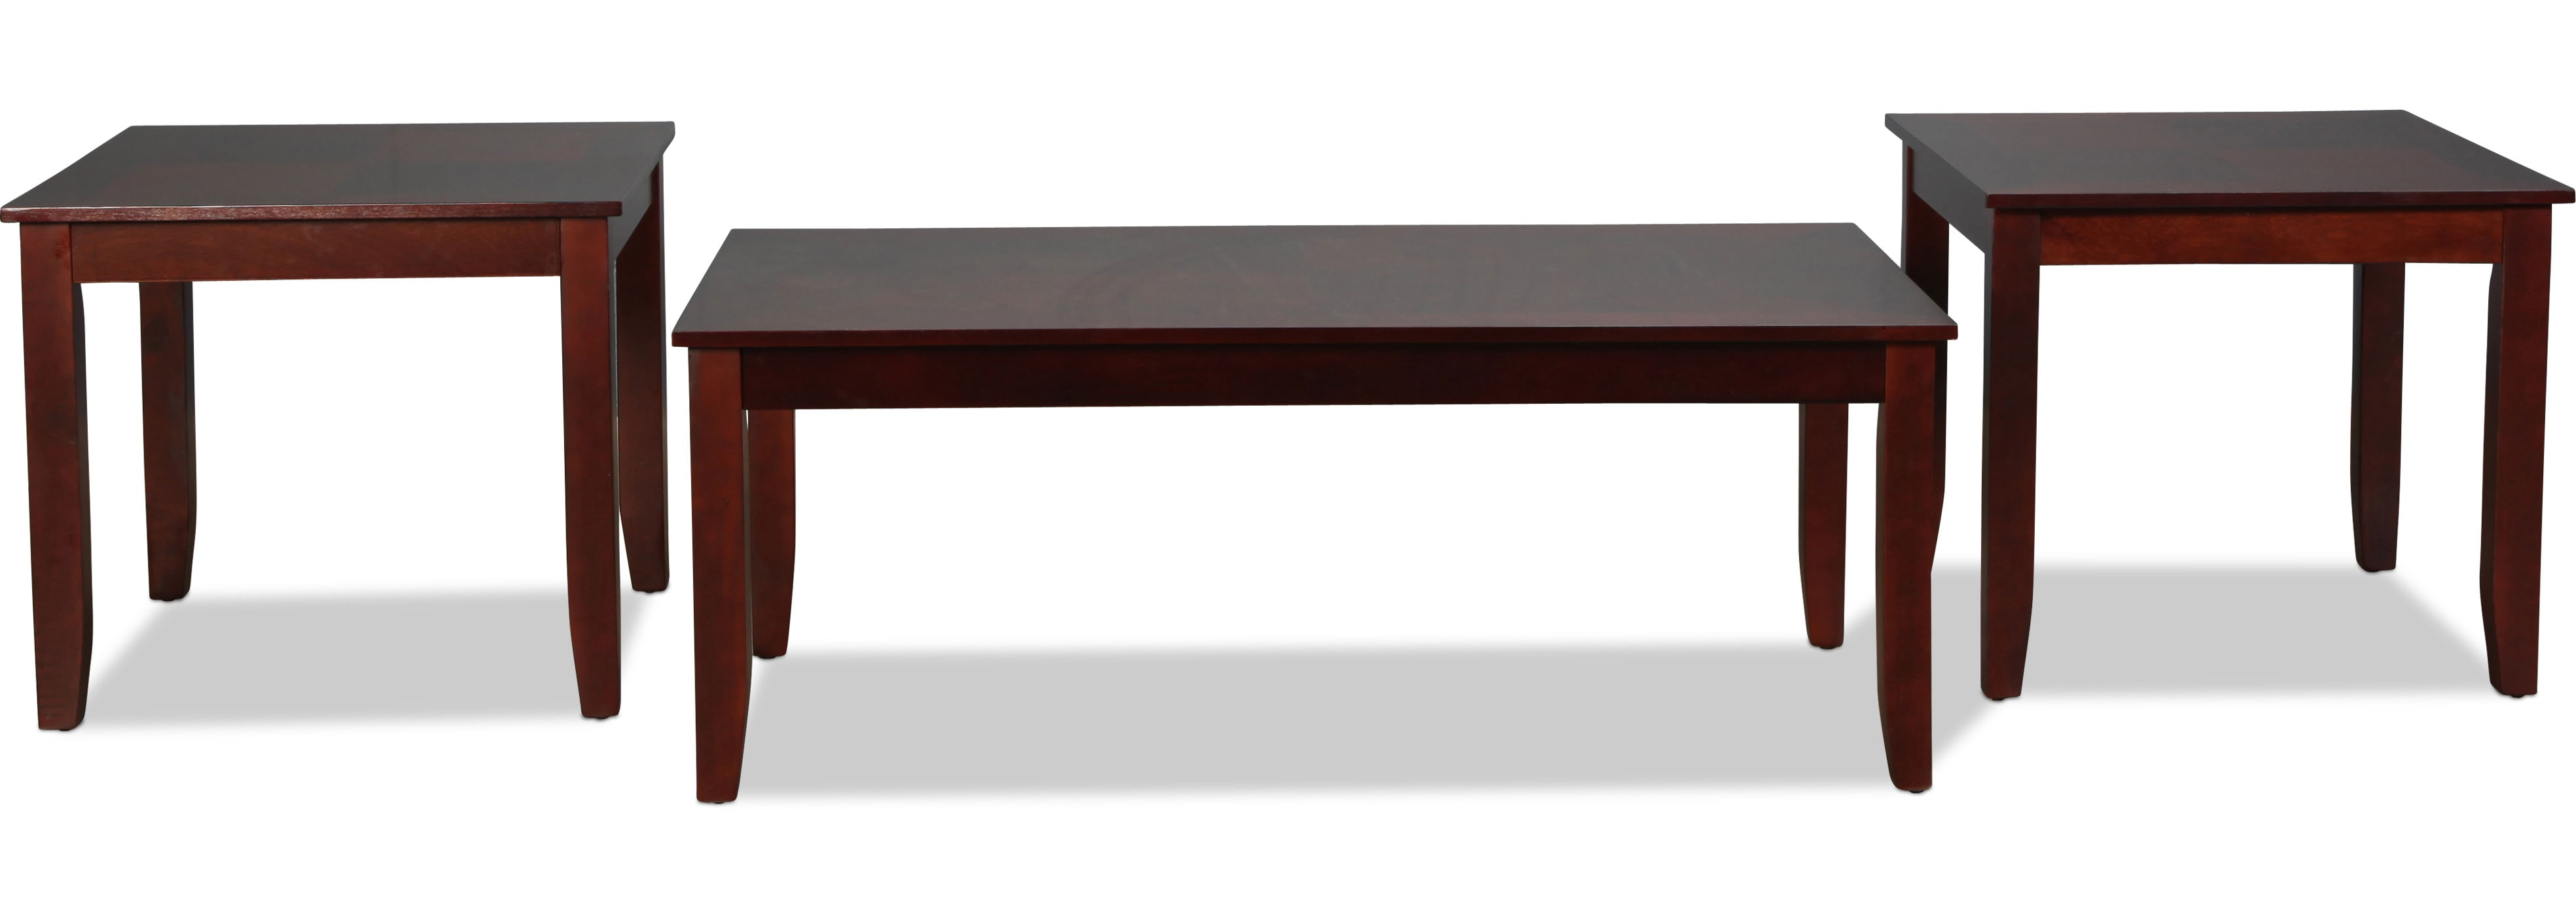 Staley Coffee Table and 2 End Tables - Cherry